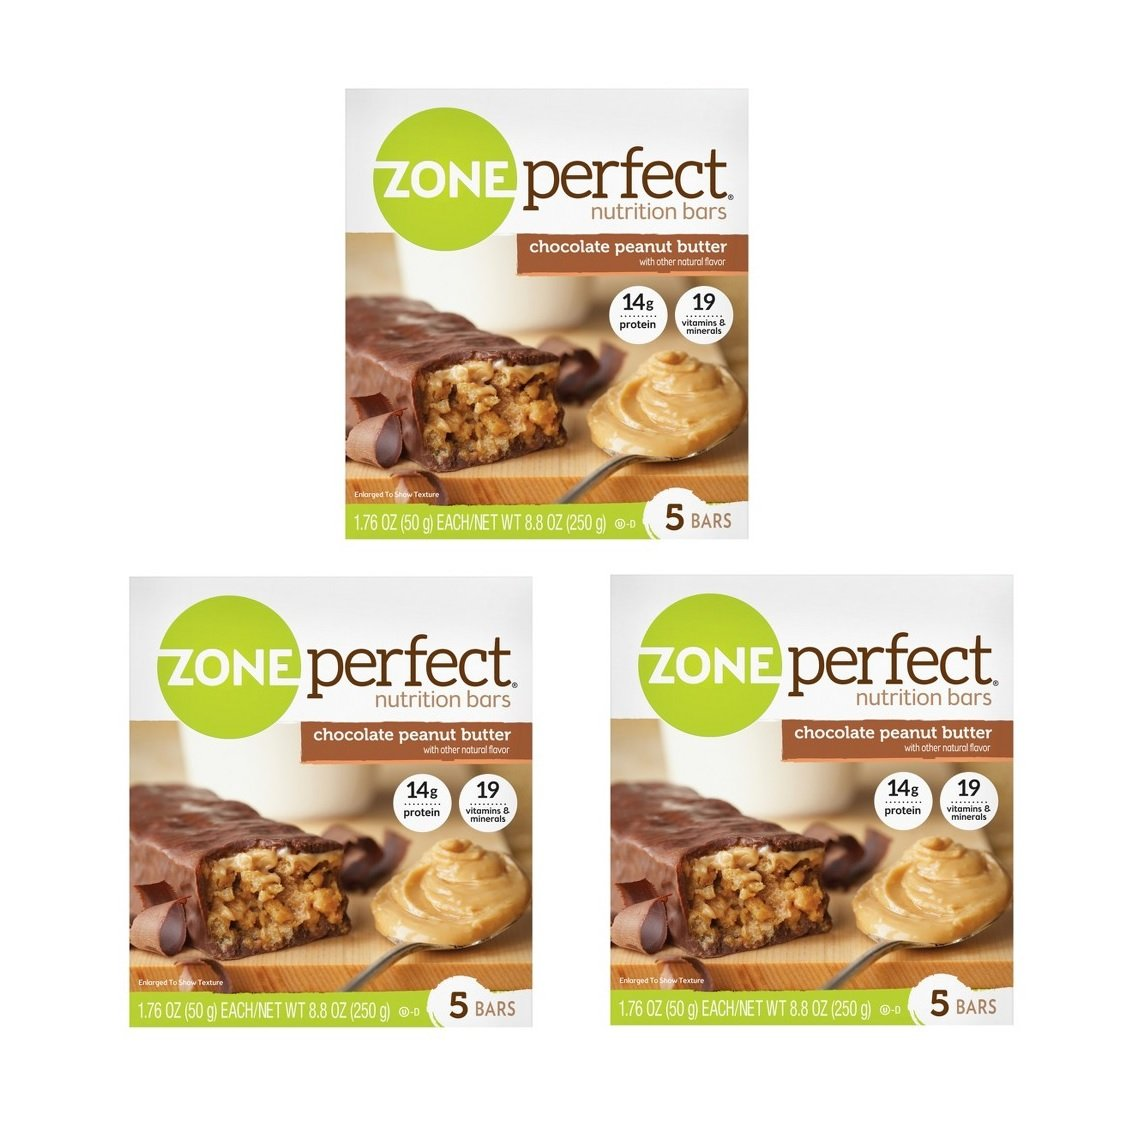 Zone Perfect Nutrition Bar, Chocolate Peanut Butter, 14 Grams Protein, 5 Count (Pack of 3 = 15 Ct)